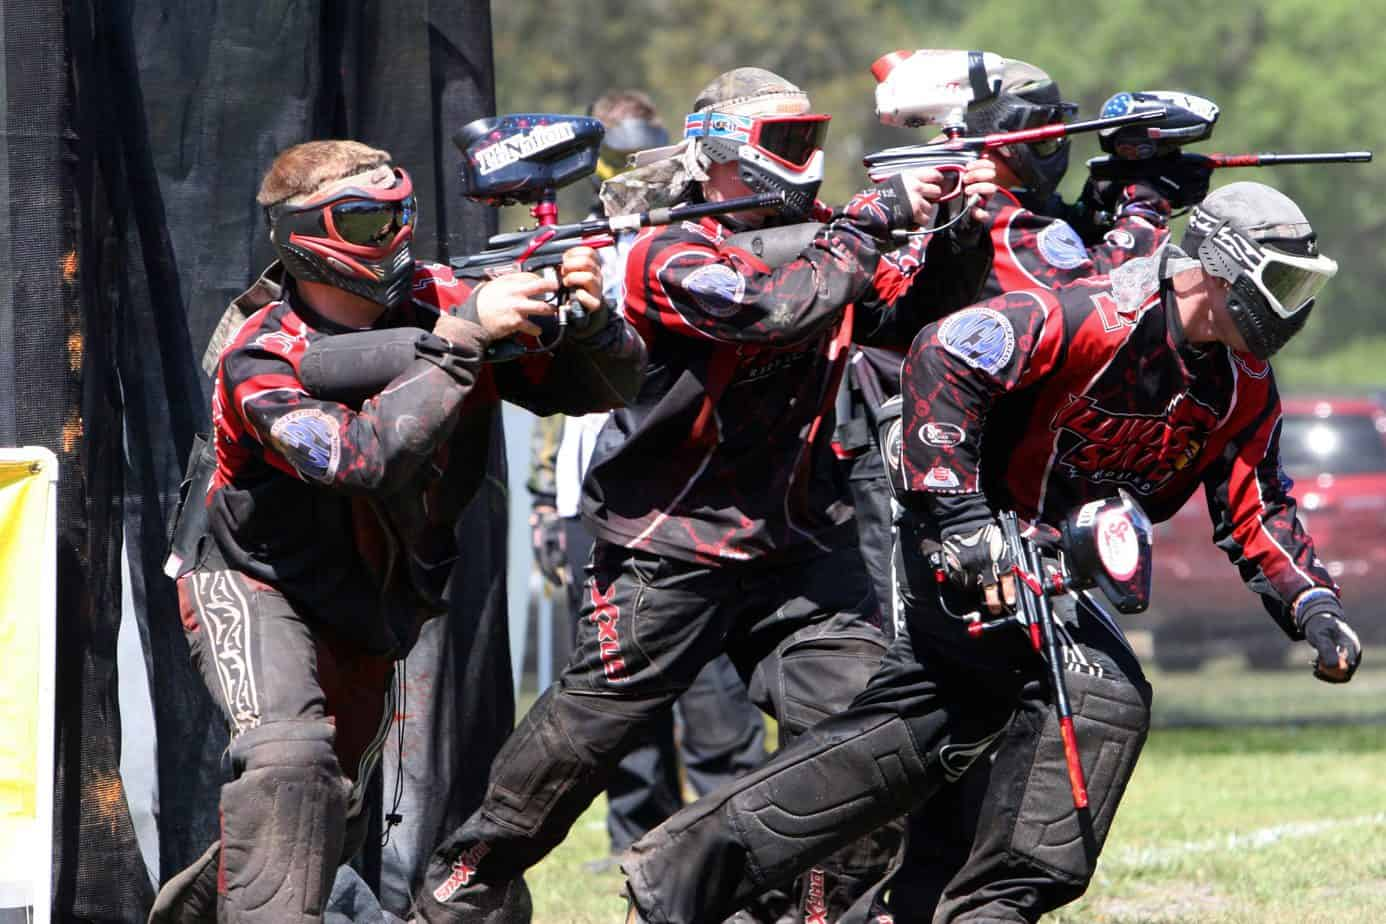 a group of paintball players - featured image